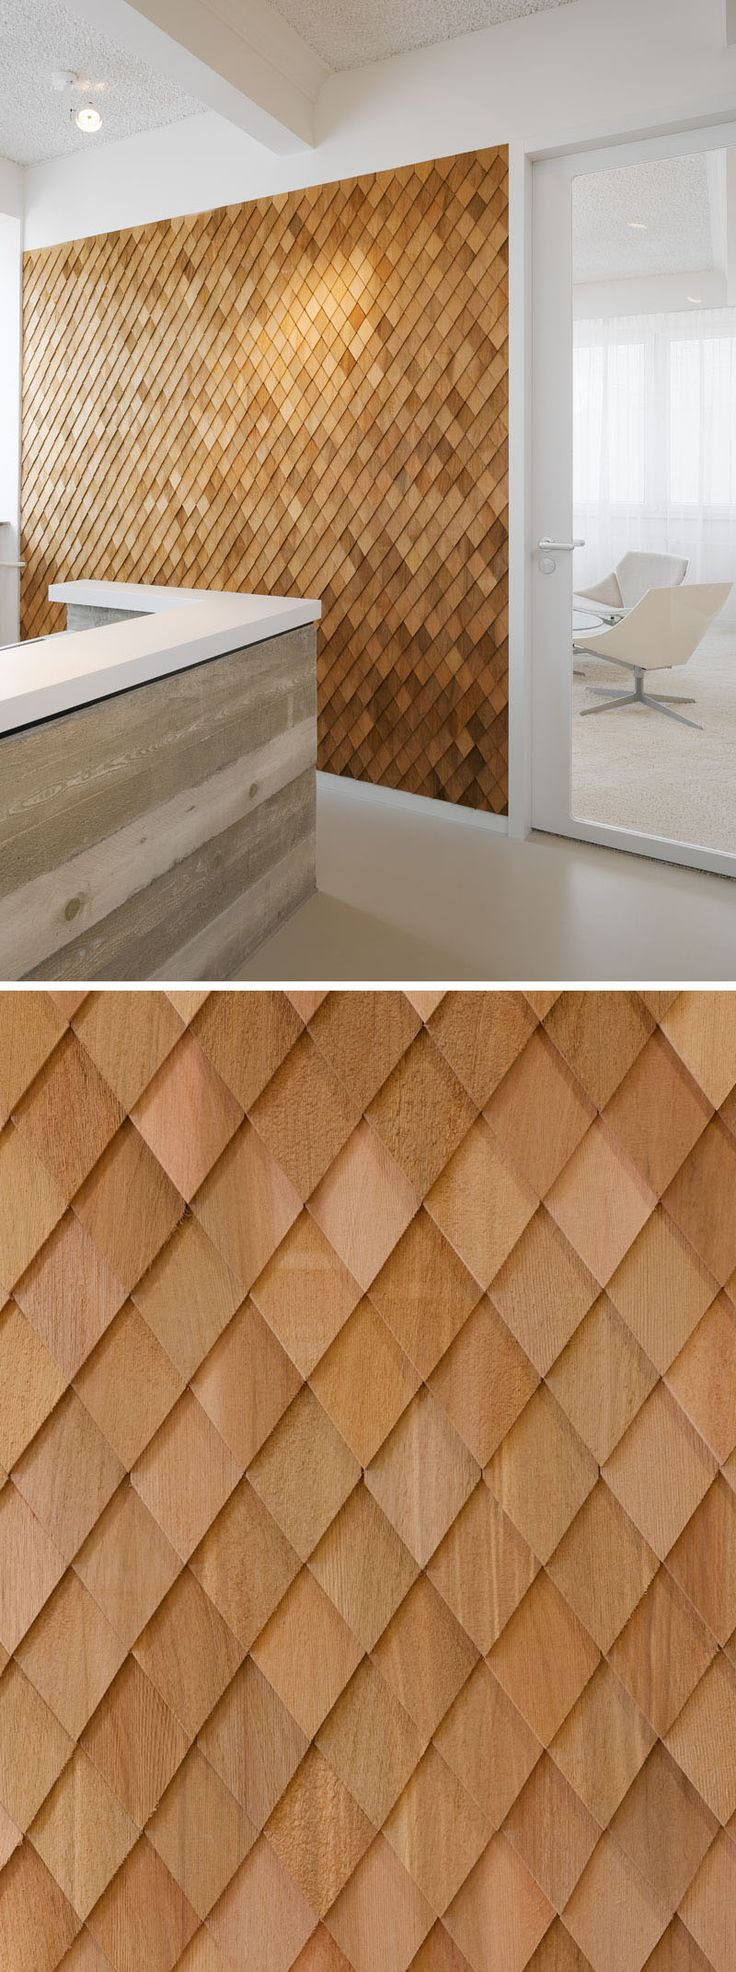 Interior Design Idea   In This Contemporary Office Interior, The Designers  Used Wooden Shingles On